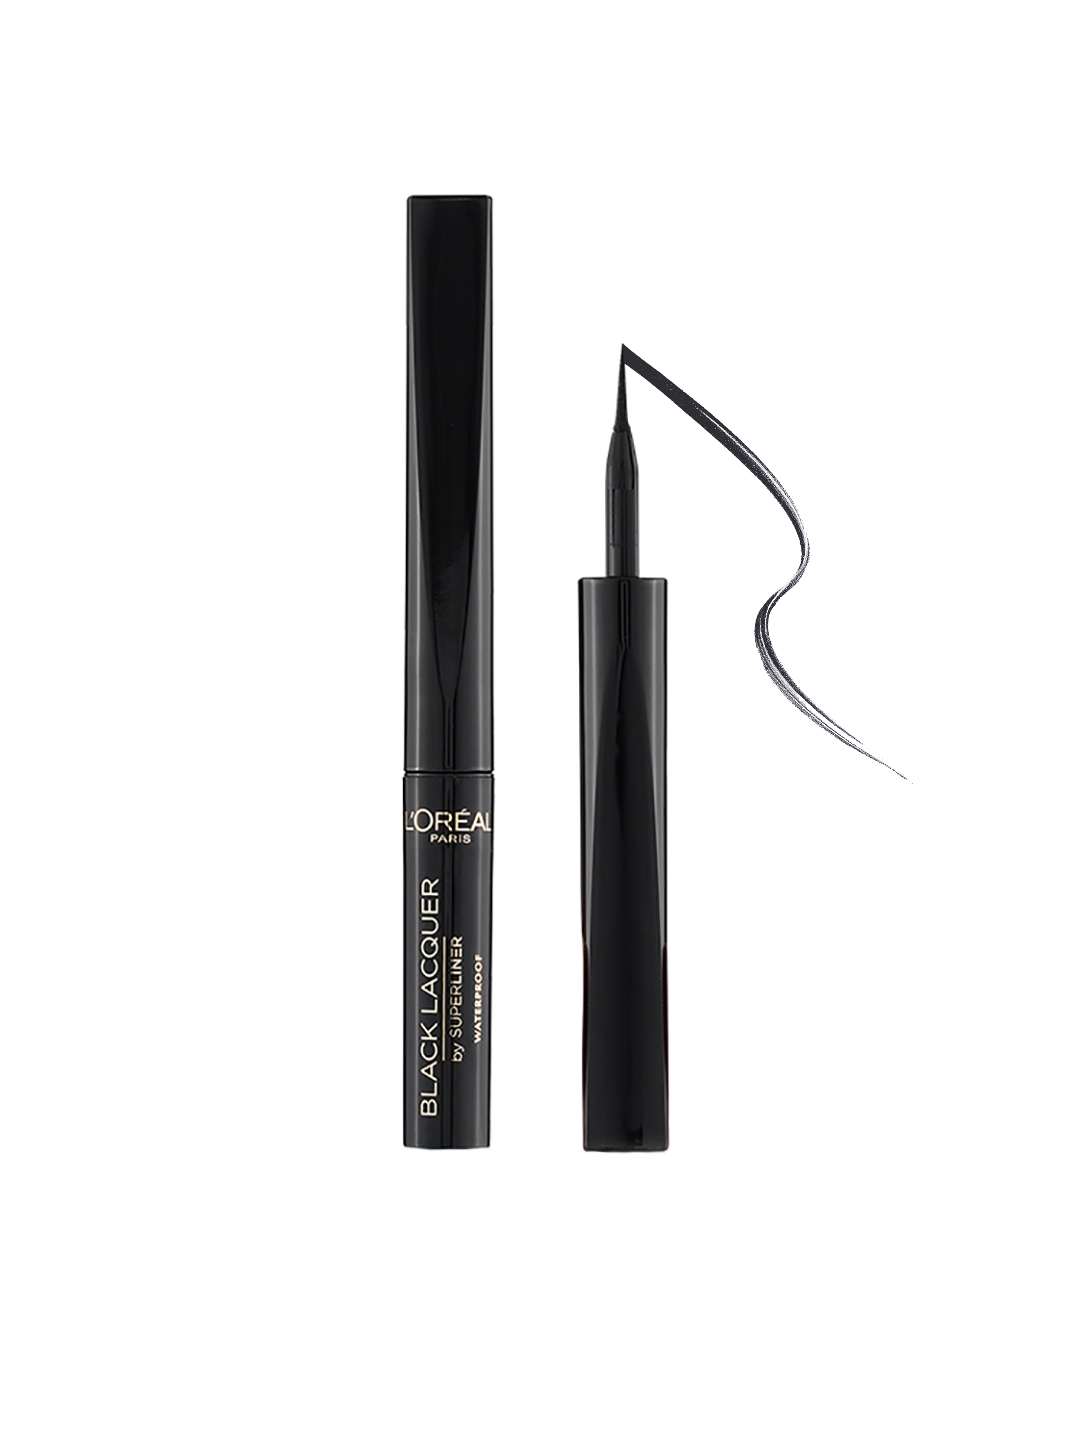 478e34b2d53 Buy LOreal Paris Super Liner Black Lacquer Eye Liner - Kajal And ...